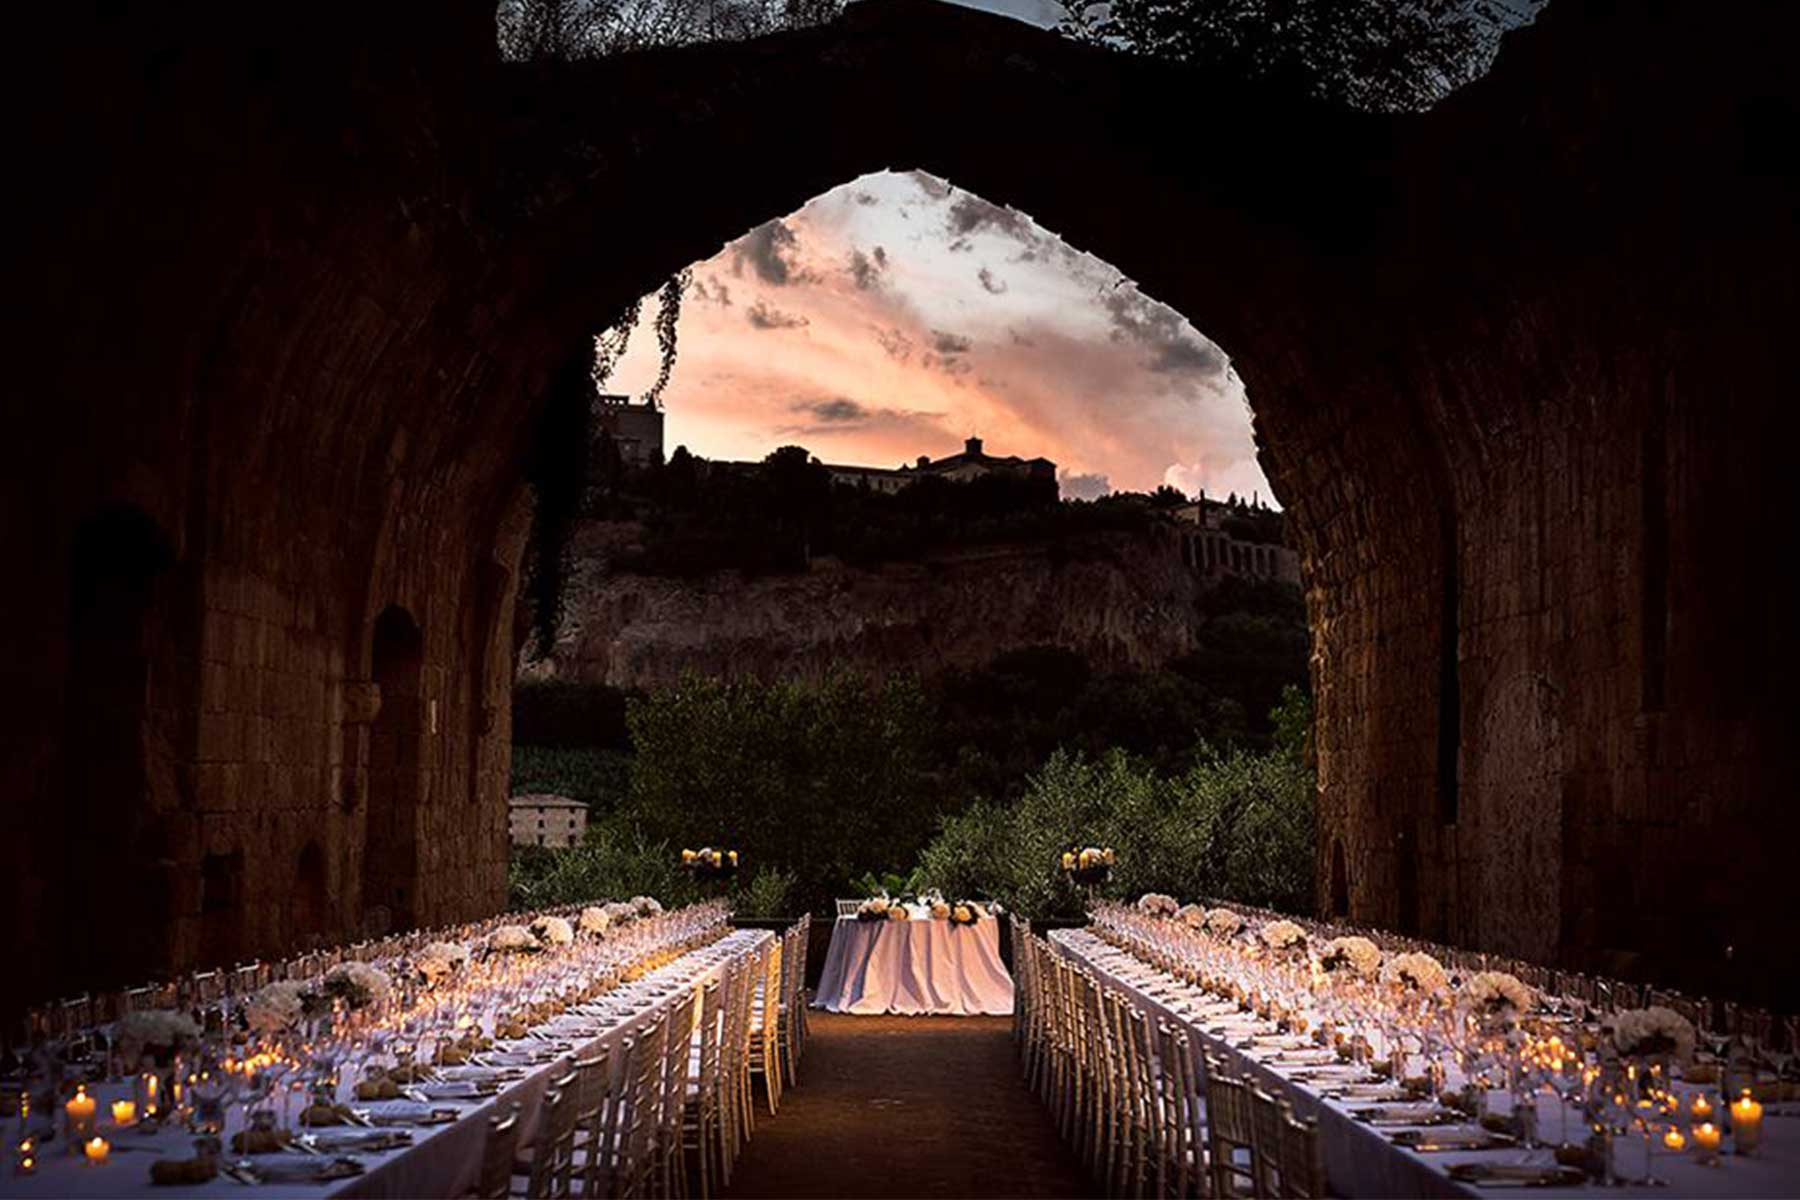 la badia, exclusive location for wedding and events